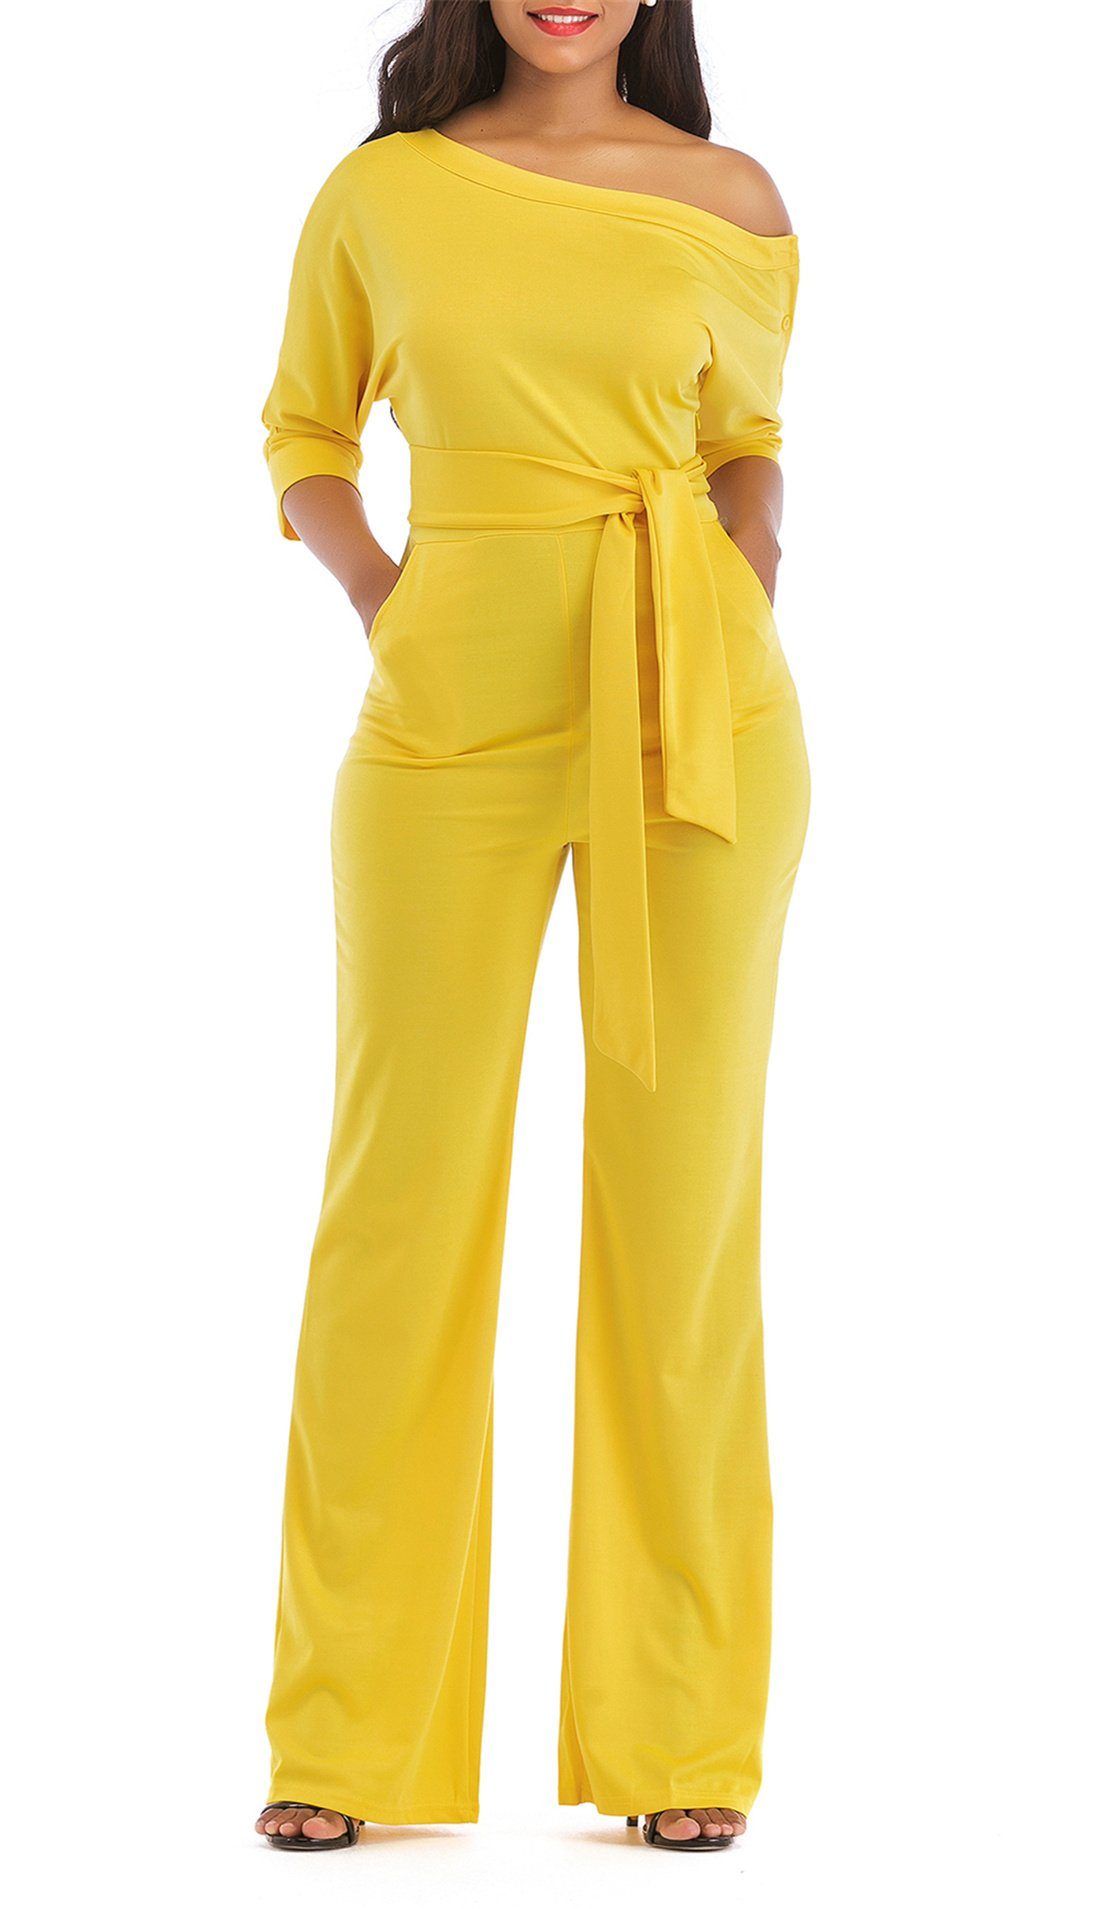 ONLYSHE Women's Elegant Stylish One Shoulder Style Full Length Solid Color Jumpsuit Yellow Medium